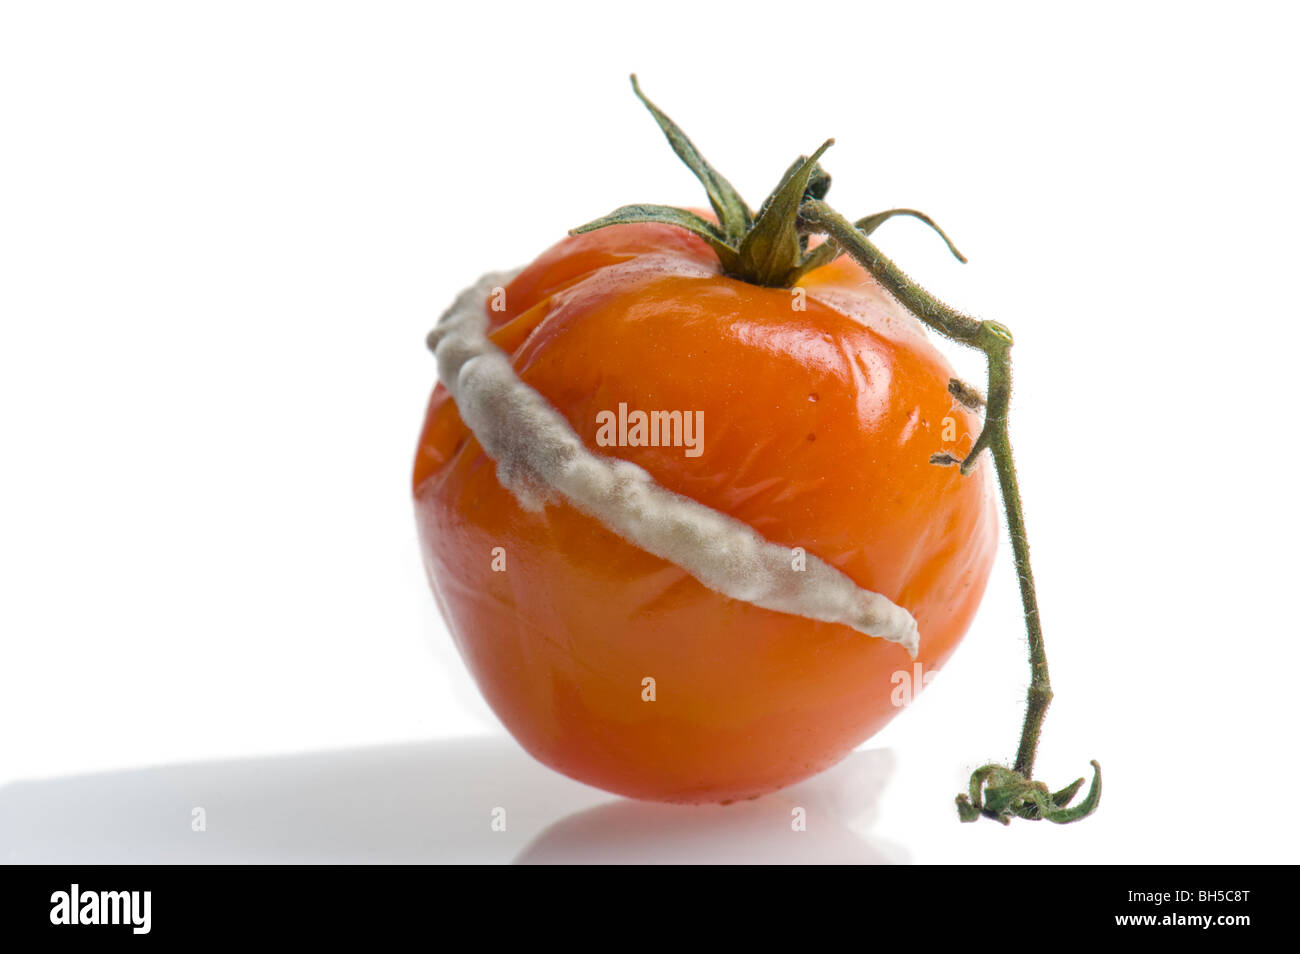 POWDERY MILDEW on tomato must mould funghi fungus mould DISEASE DISORDER FUNGAL MILDEW MOULD POWDERY PROBLEM penicillin - Stock Image